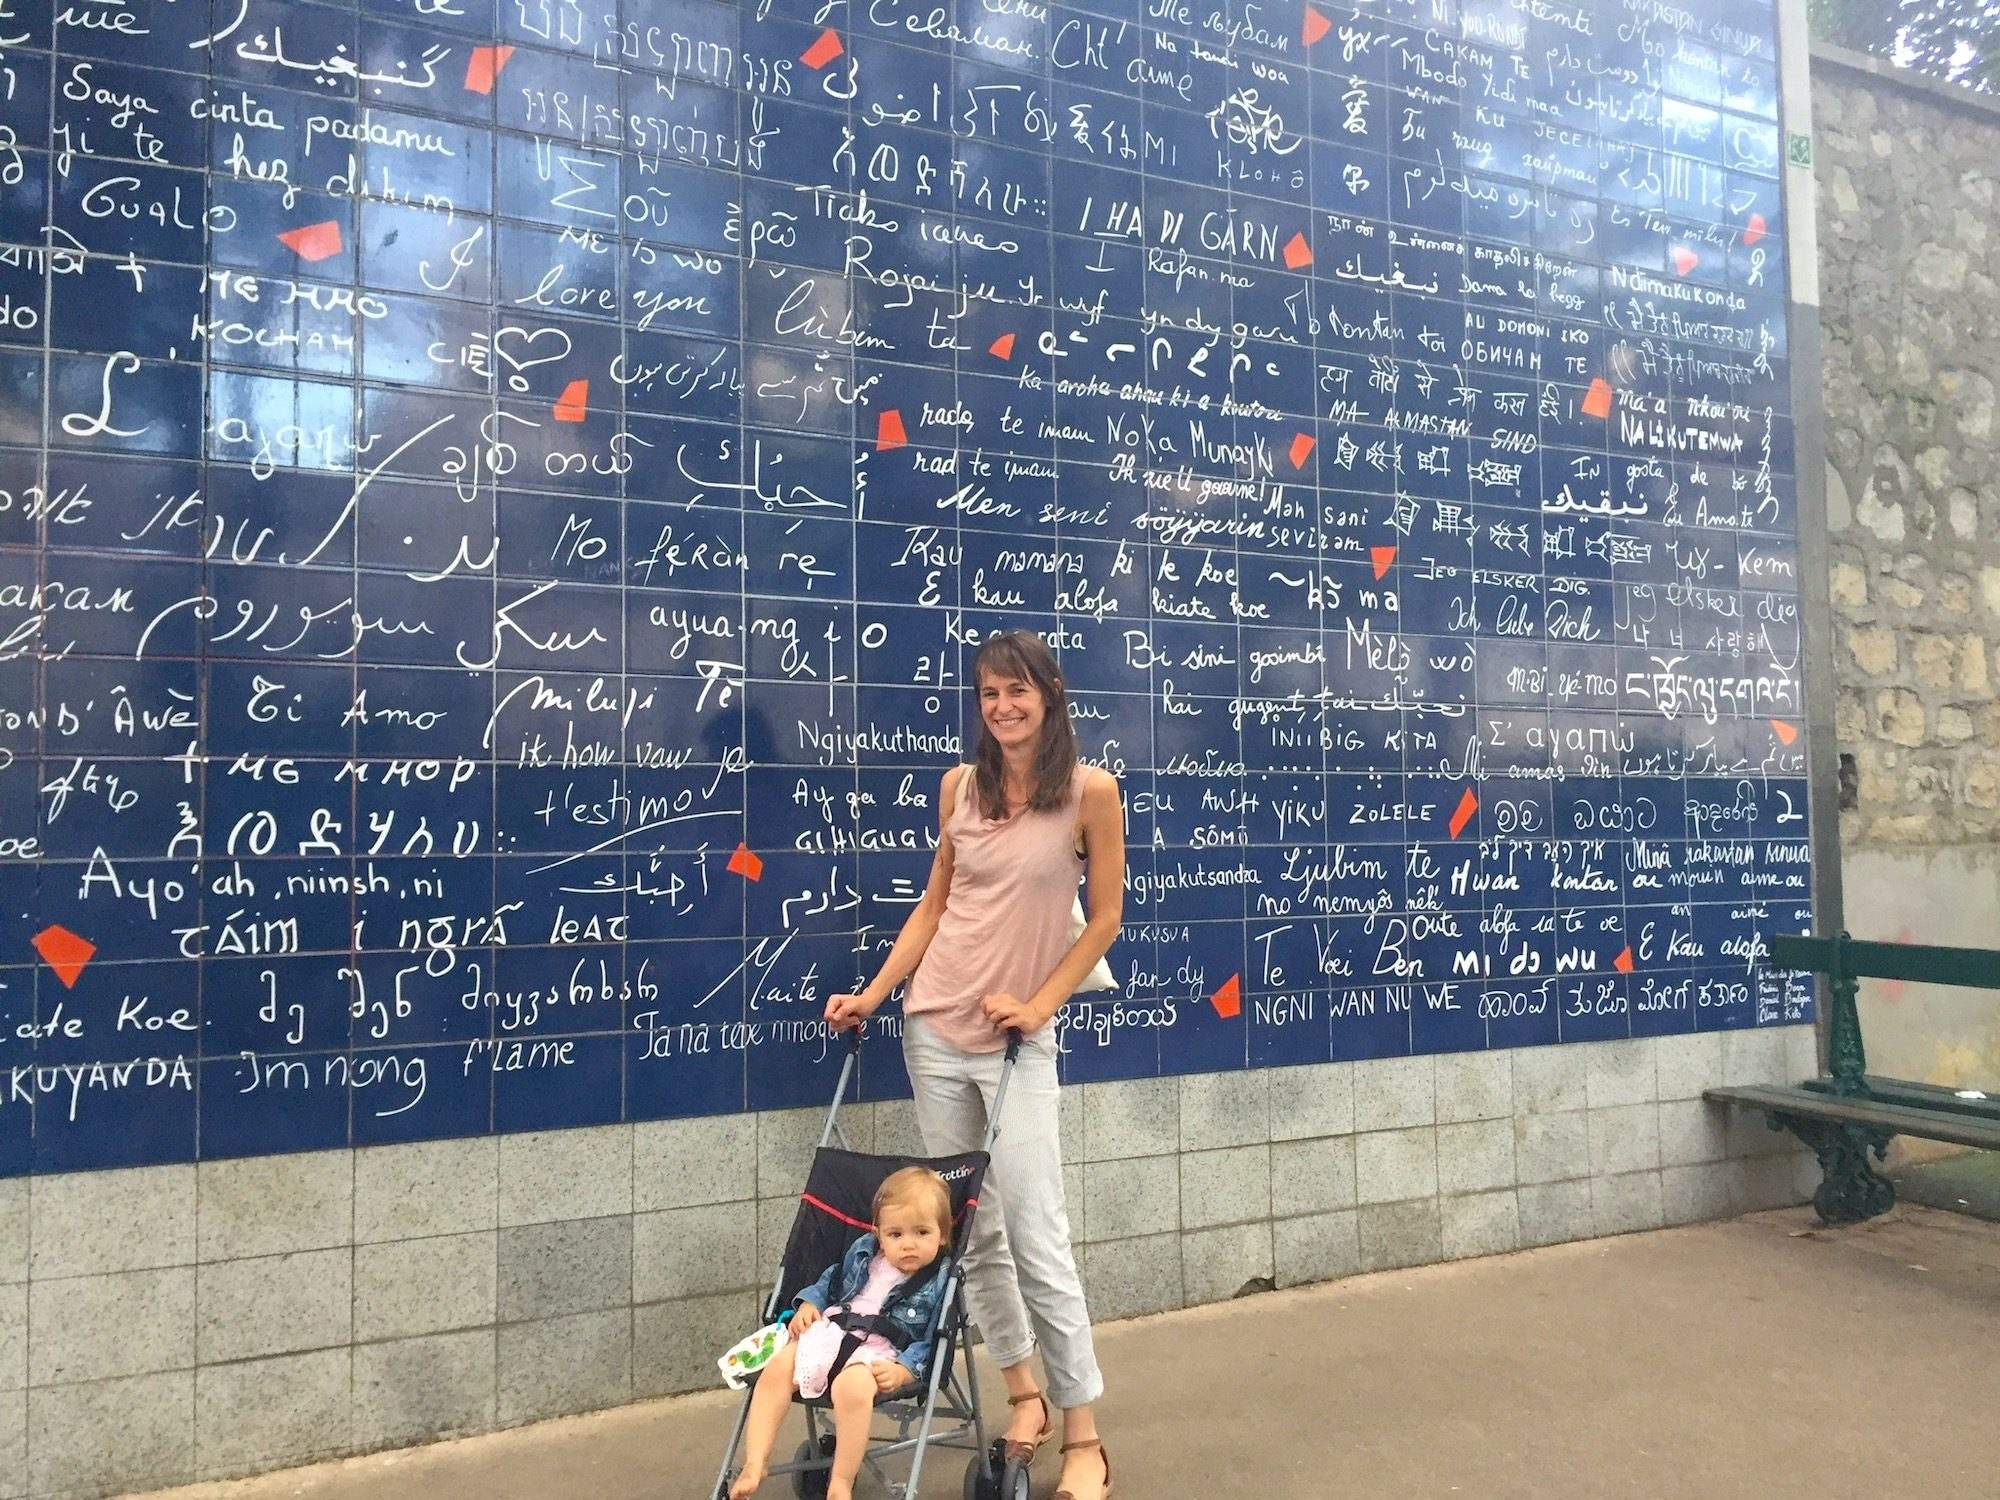 HiP Paris Blog explores what it's like traveling to Paris with babies, and for this mommy posing in front of the wall of I love yous with her baby in a stroller, it's easy because there's lots to do, even in hilly Montmartre.